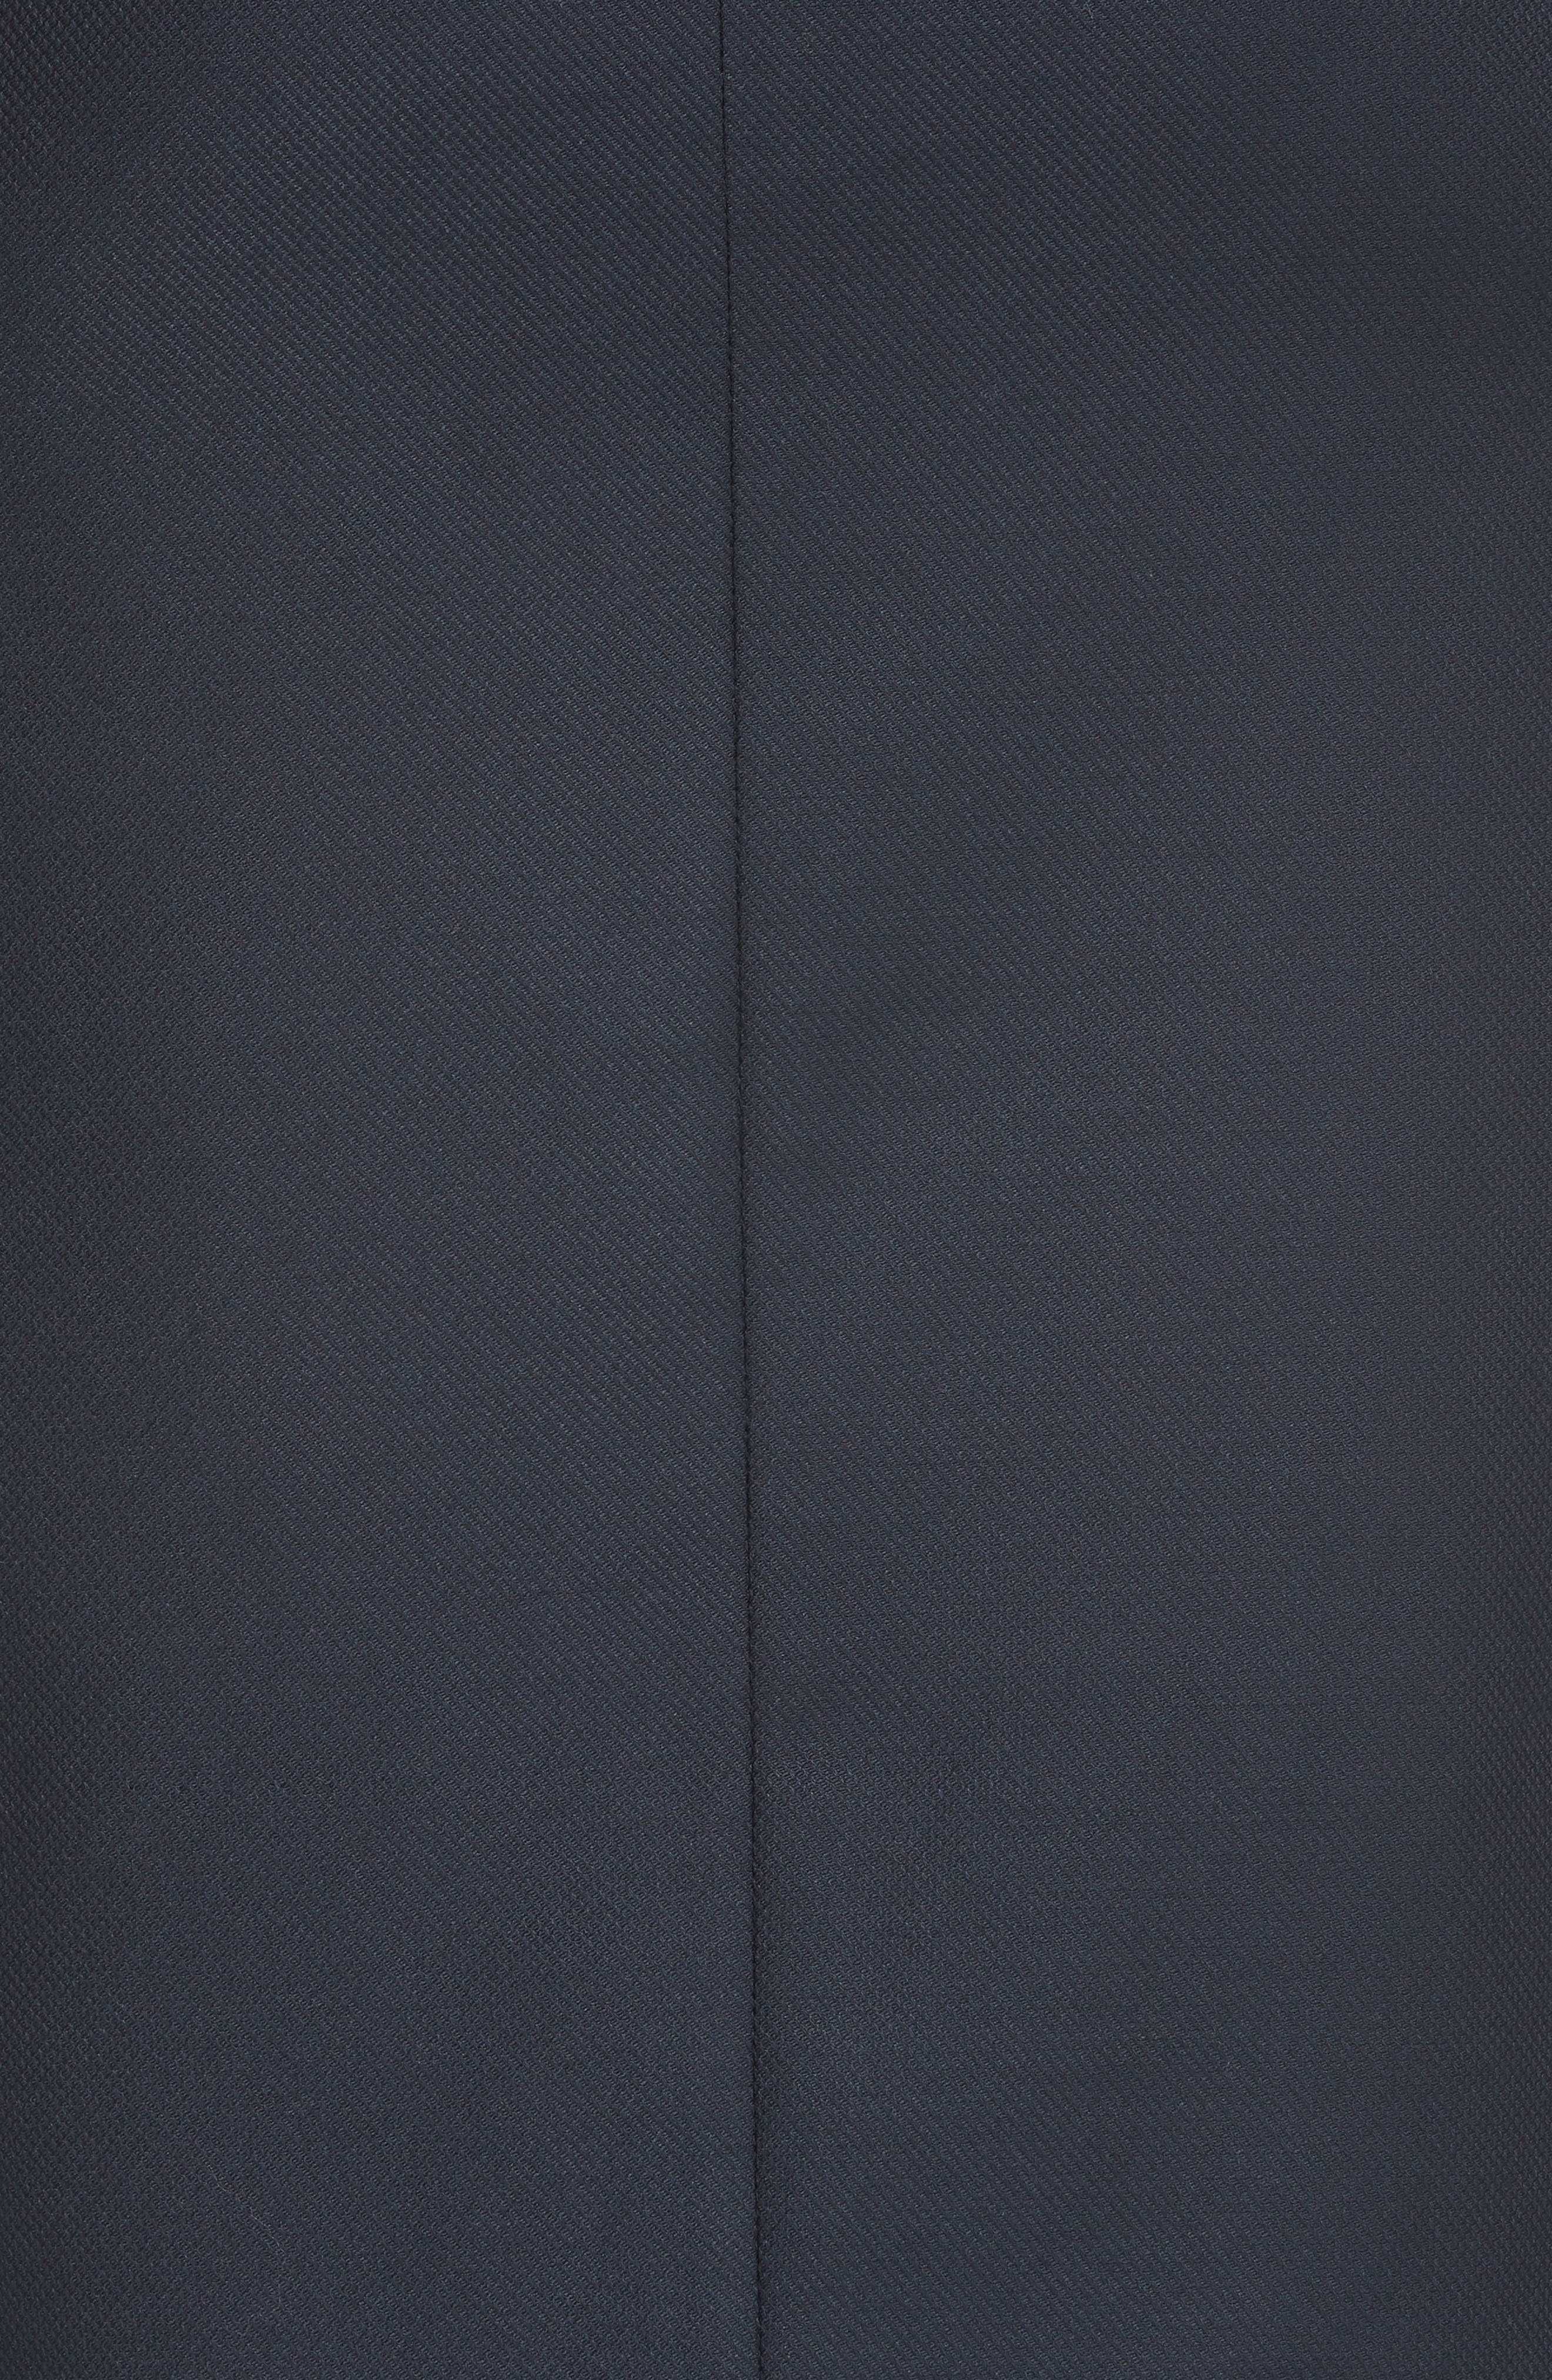 Ted Working Title Rivaas Pencil Skirt,                             Alternate thumbnail 5, color,                             DARK BLUE